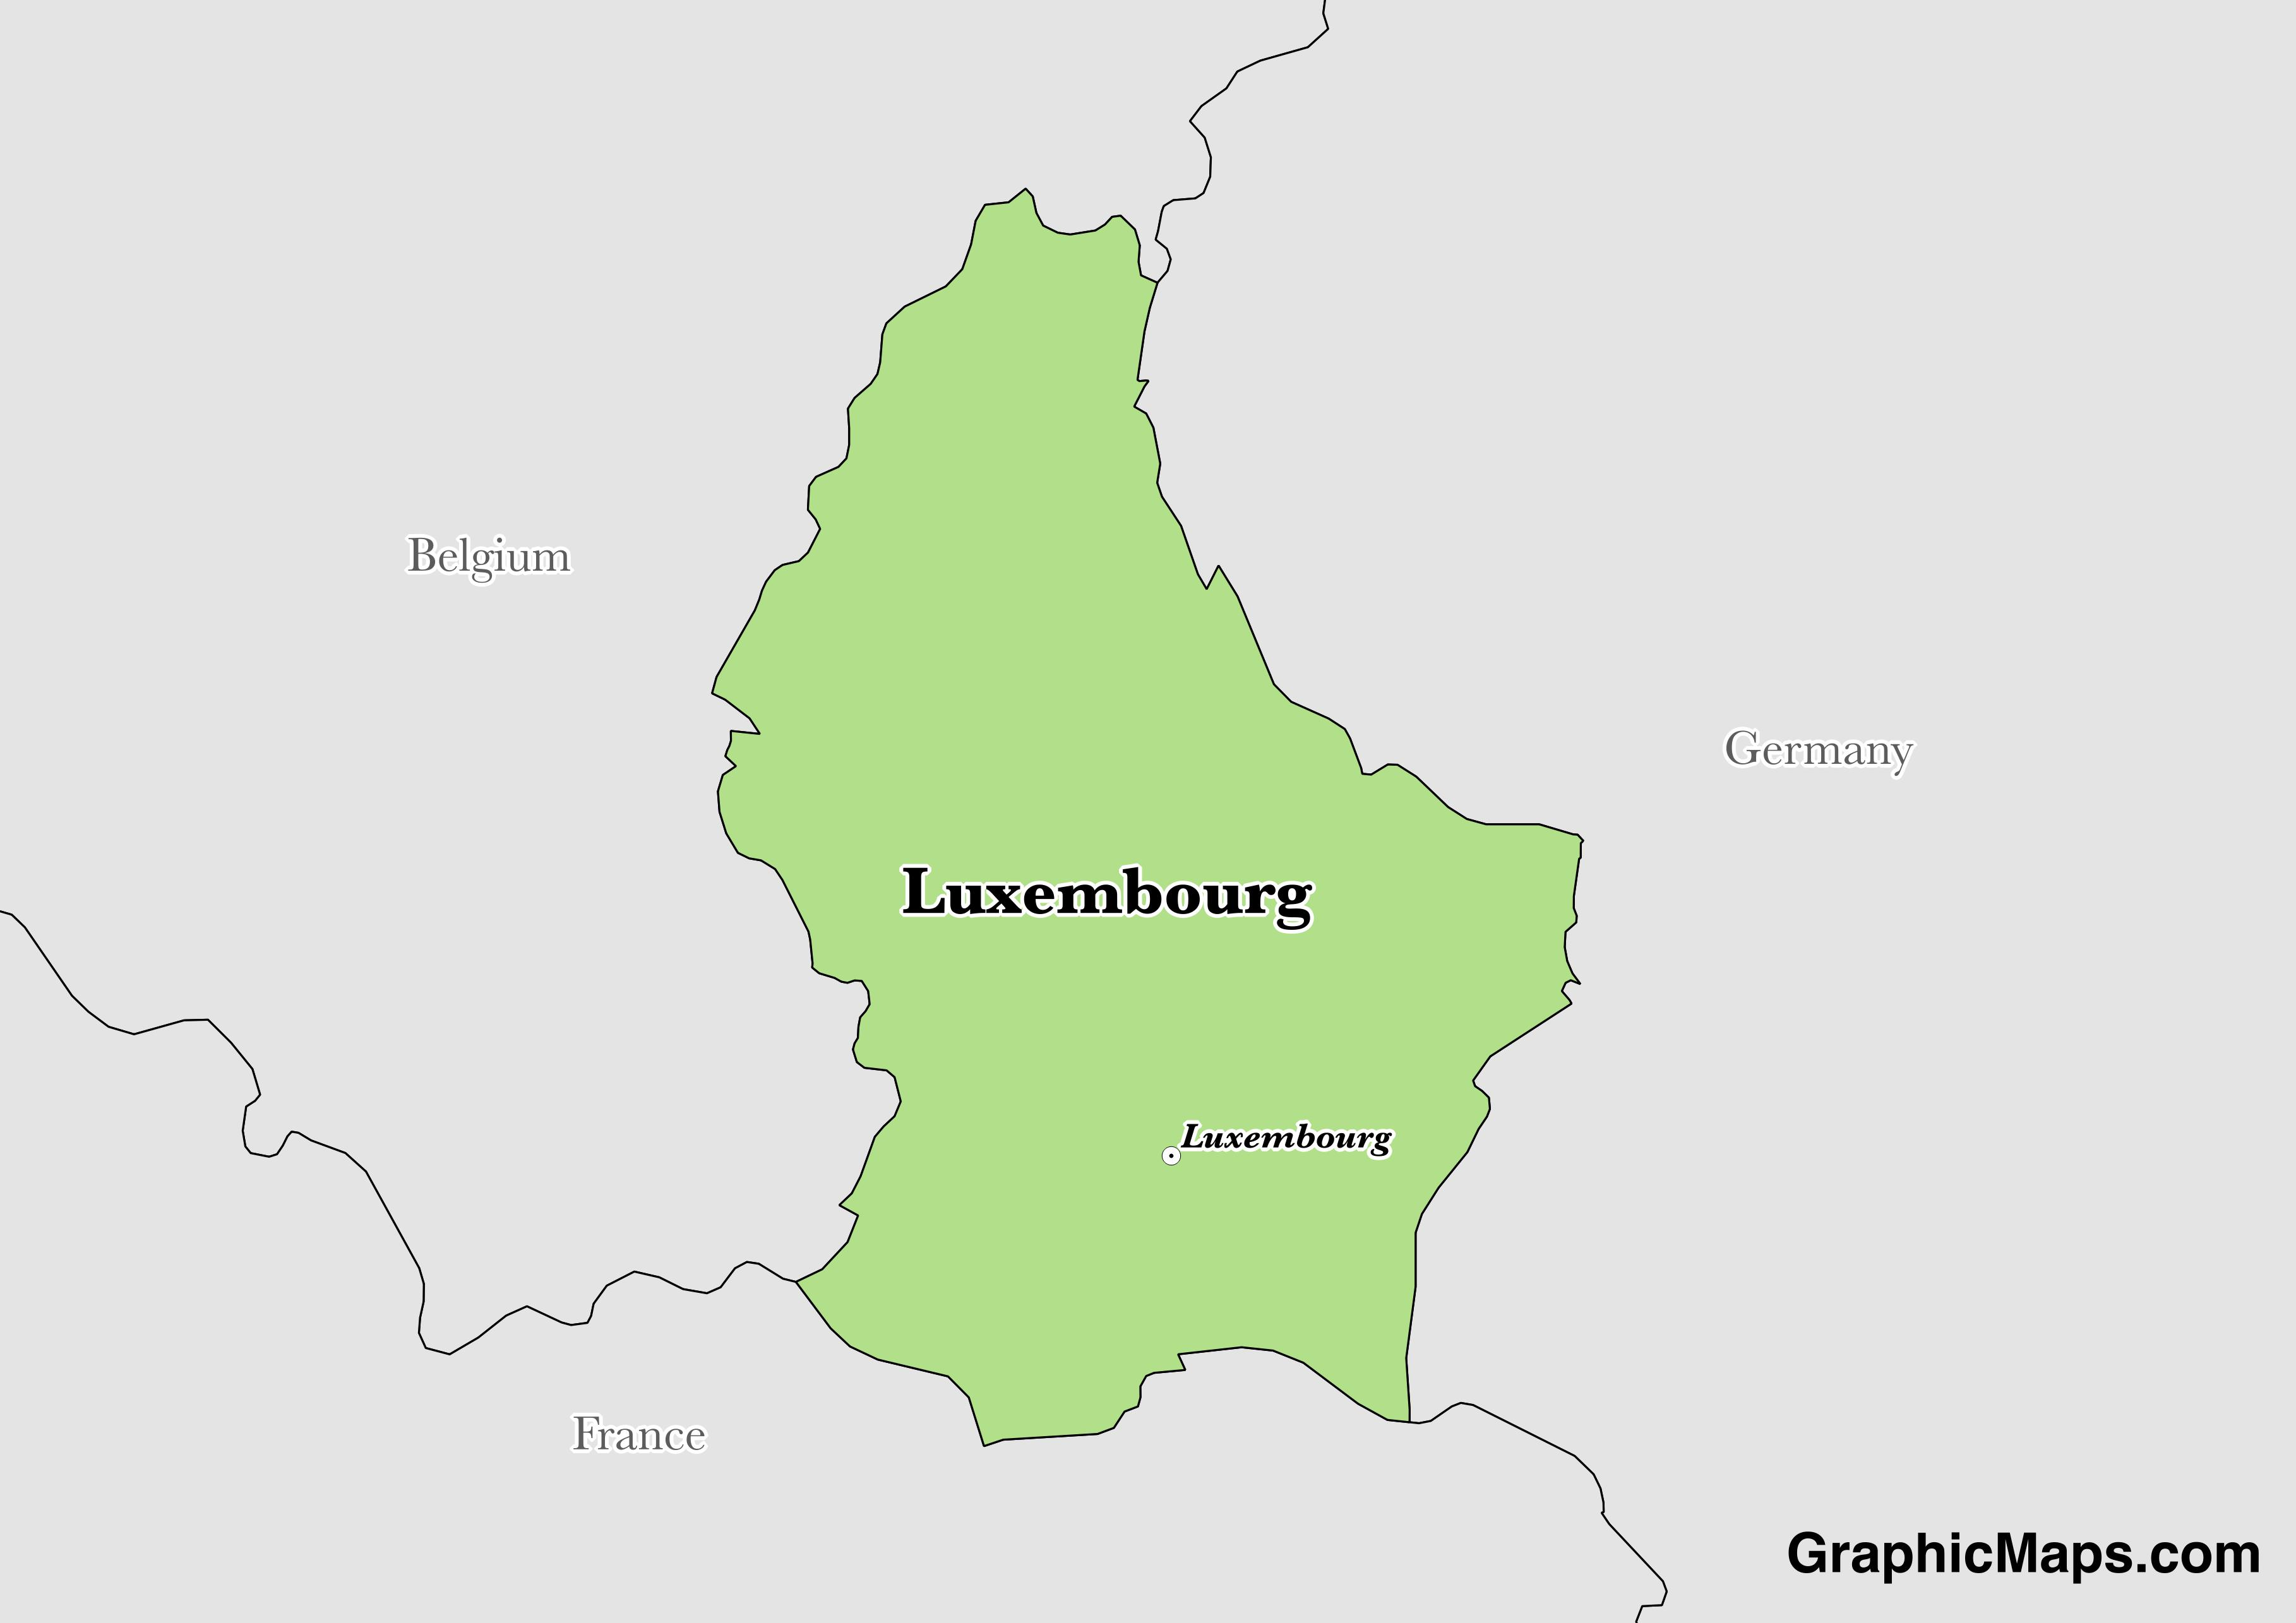 Luxembourg GraphicMapscom - Luxembourg map